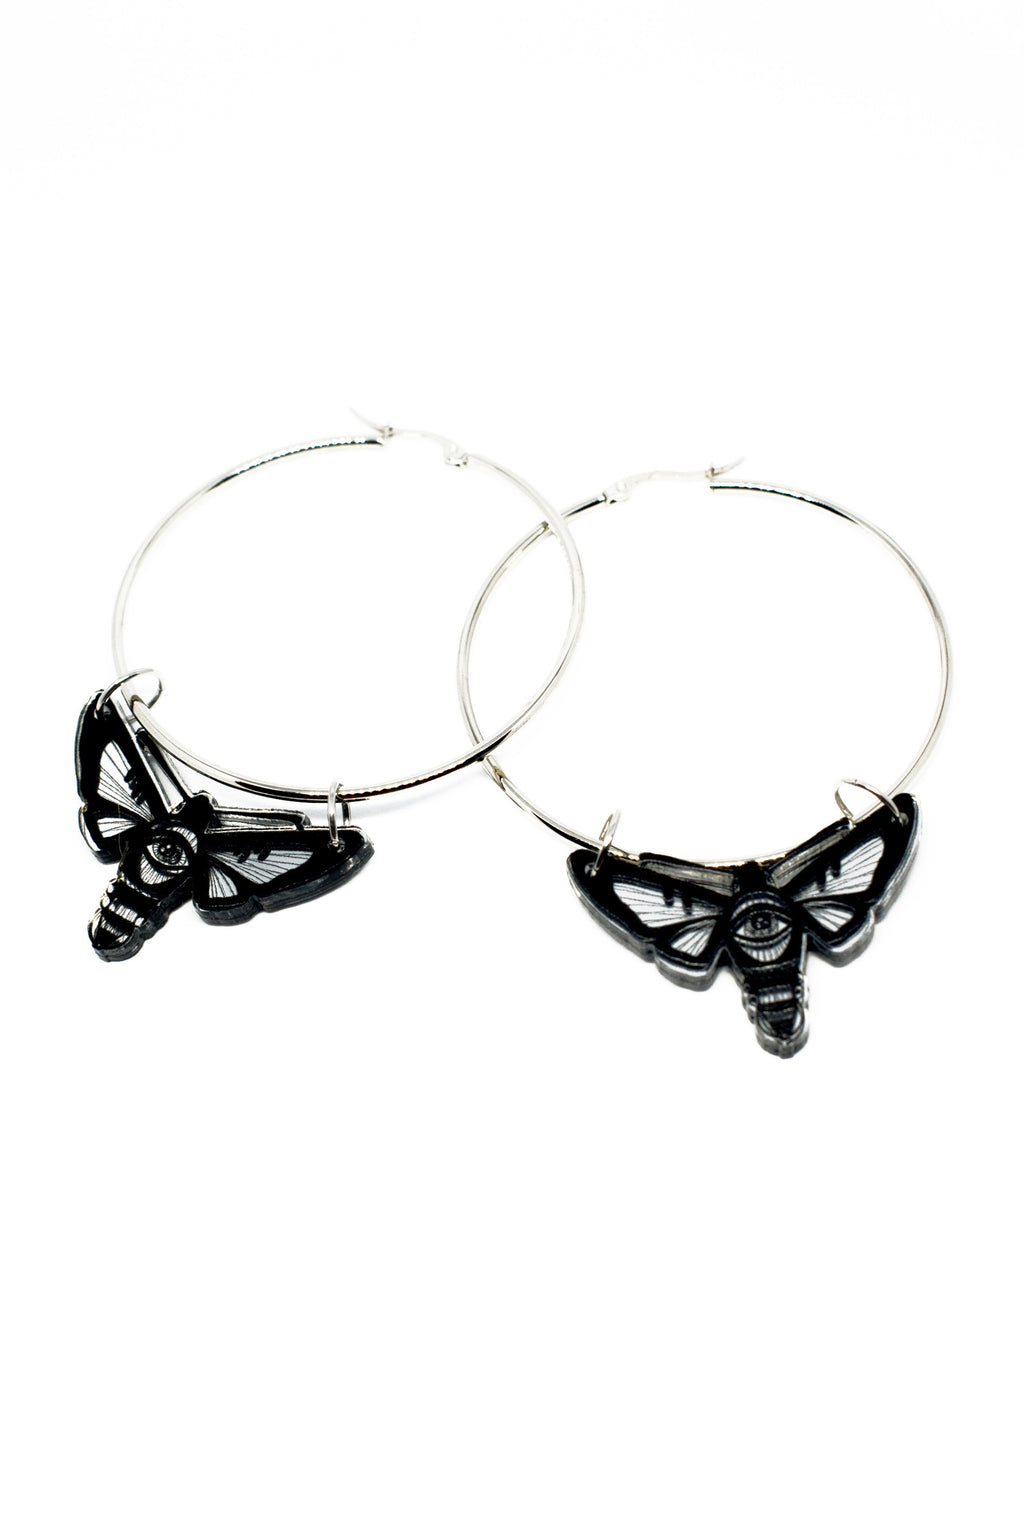 Hawkmoth Statement Hoop, Earrings